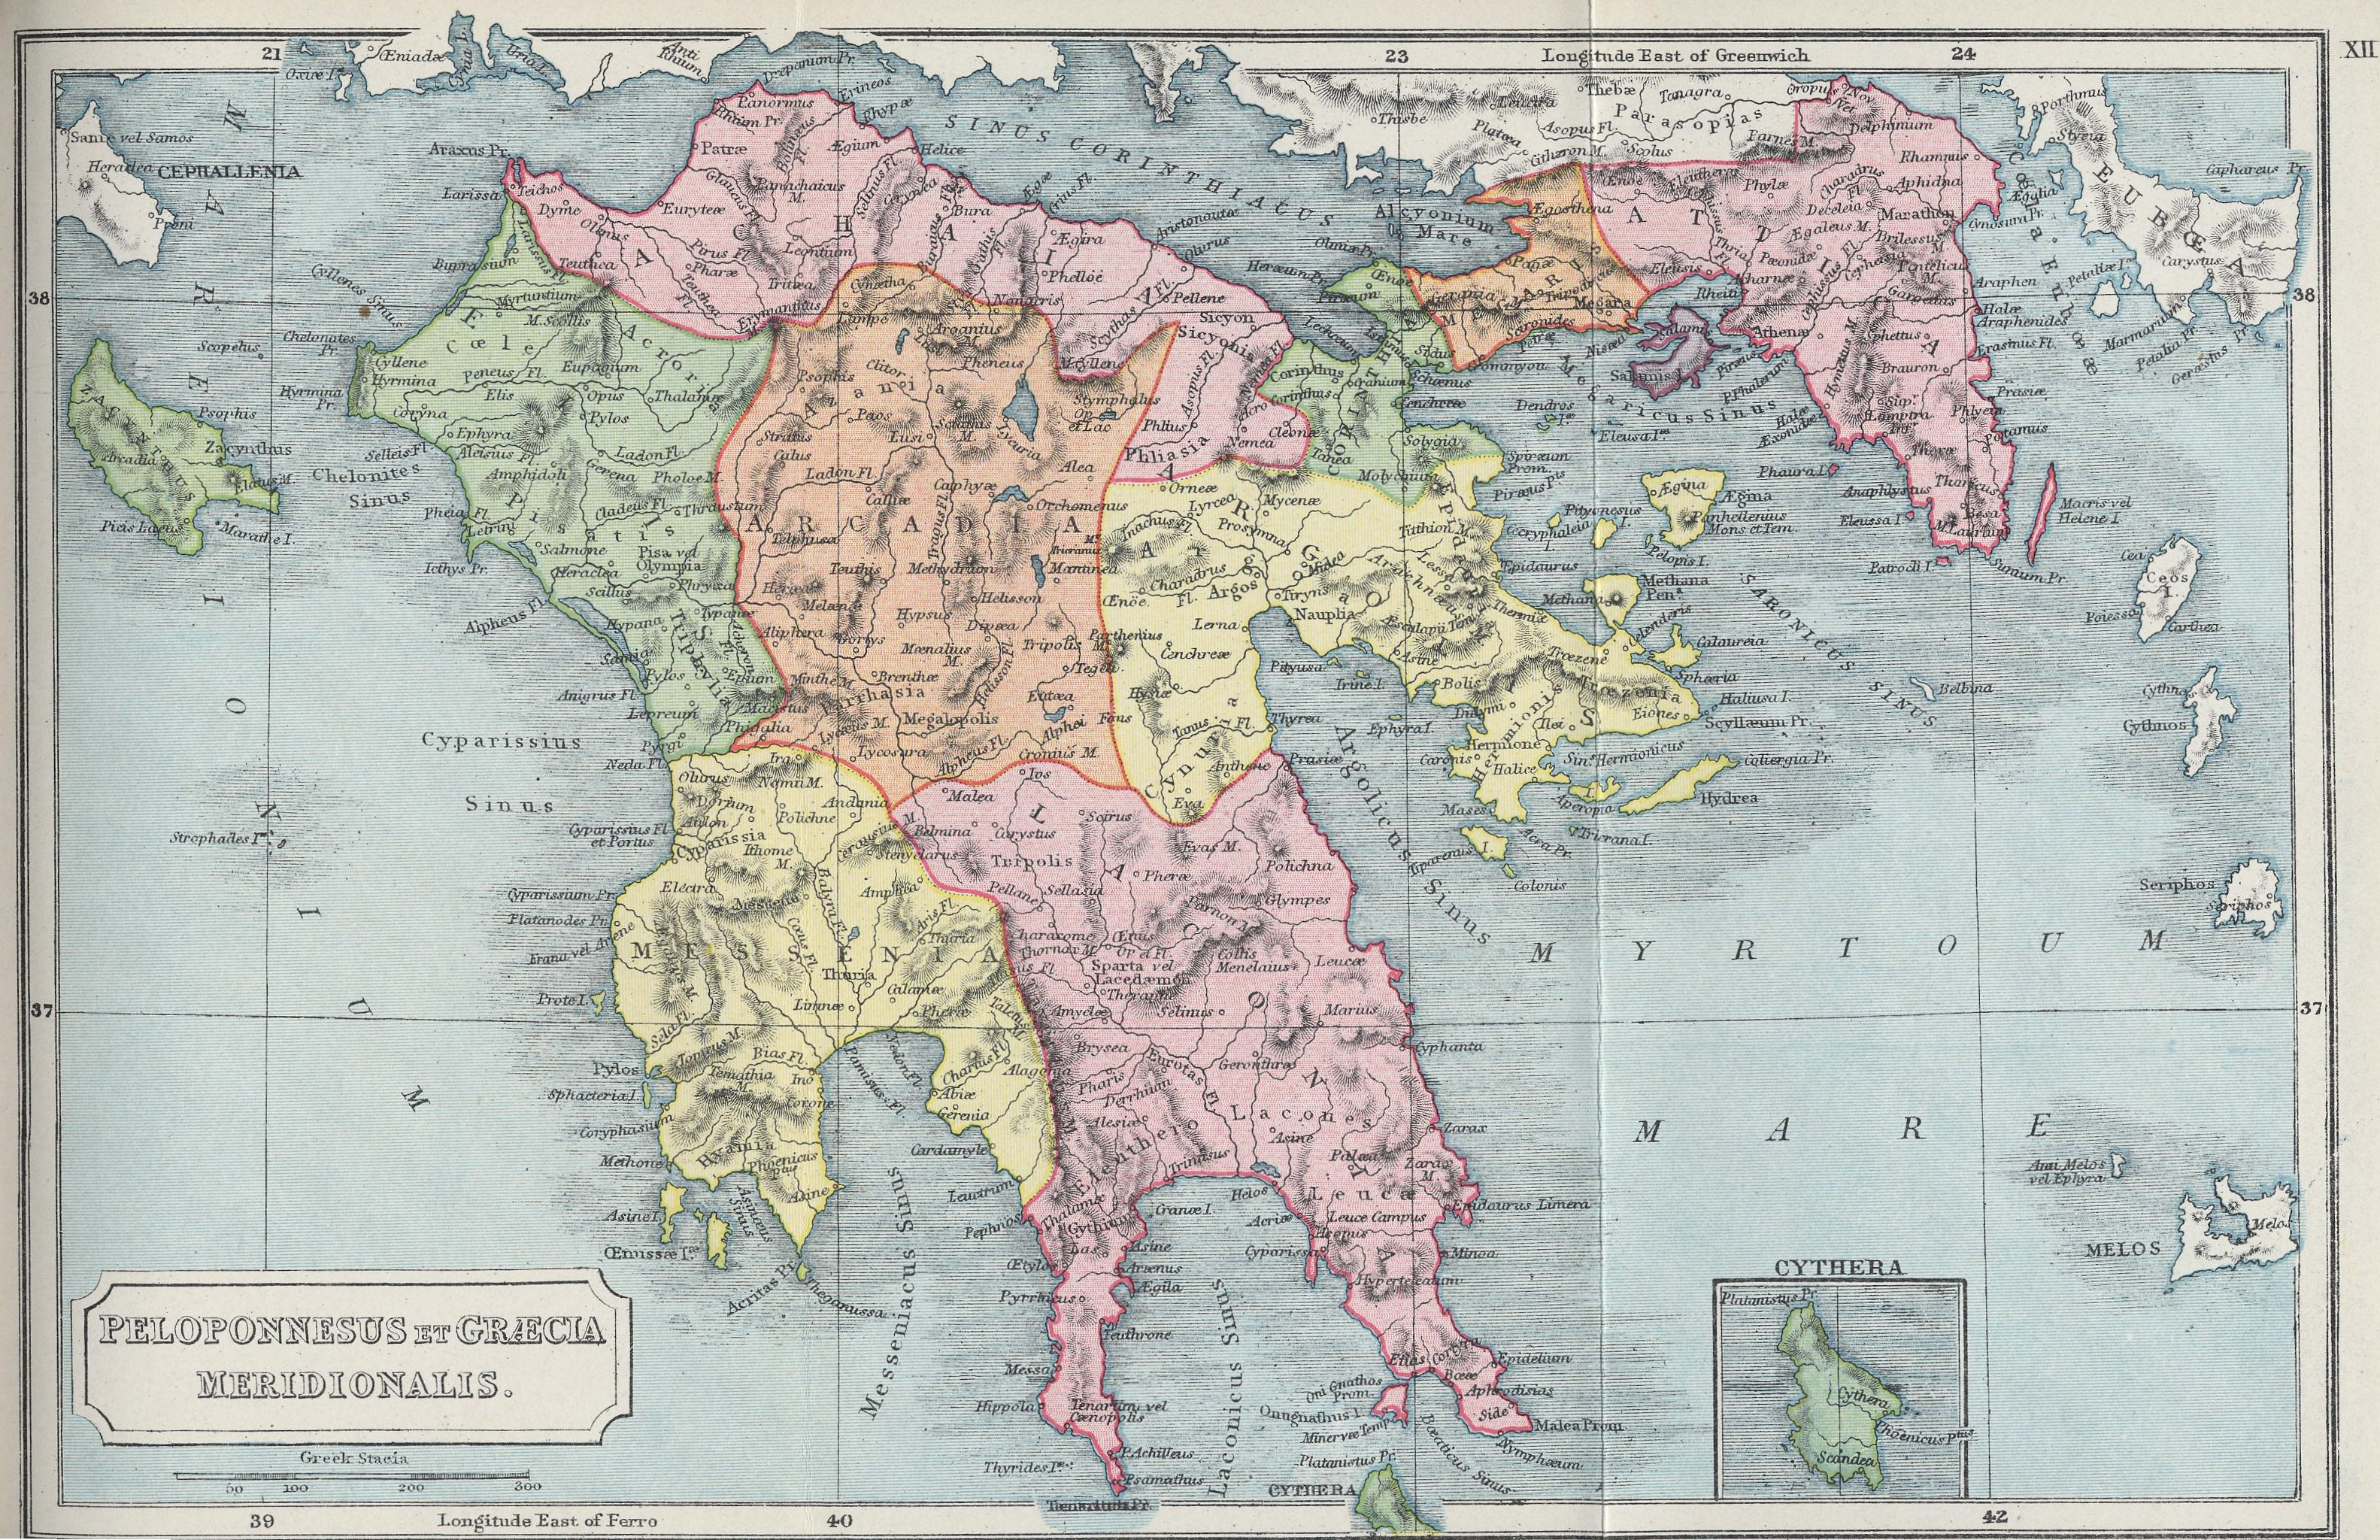 Map of Attica and the Peloponnese 70 BC - AD 180